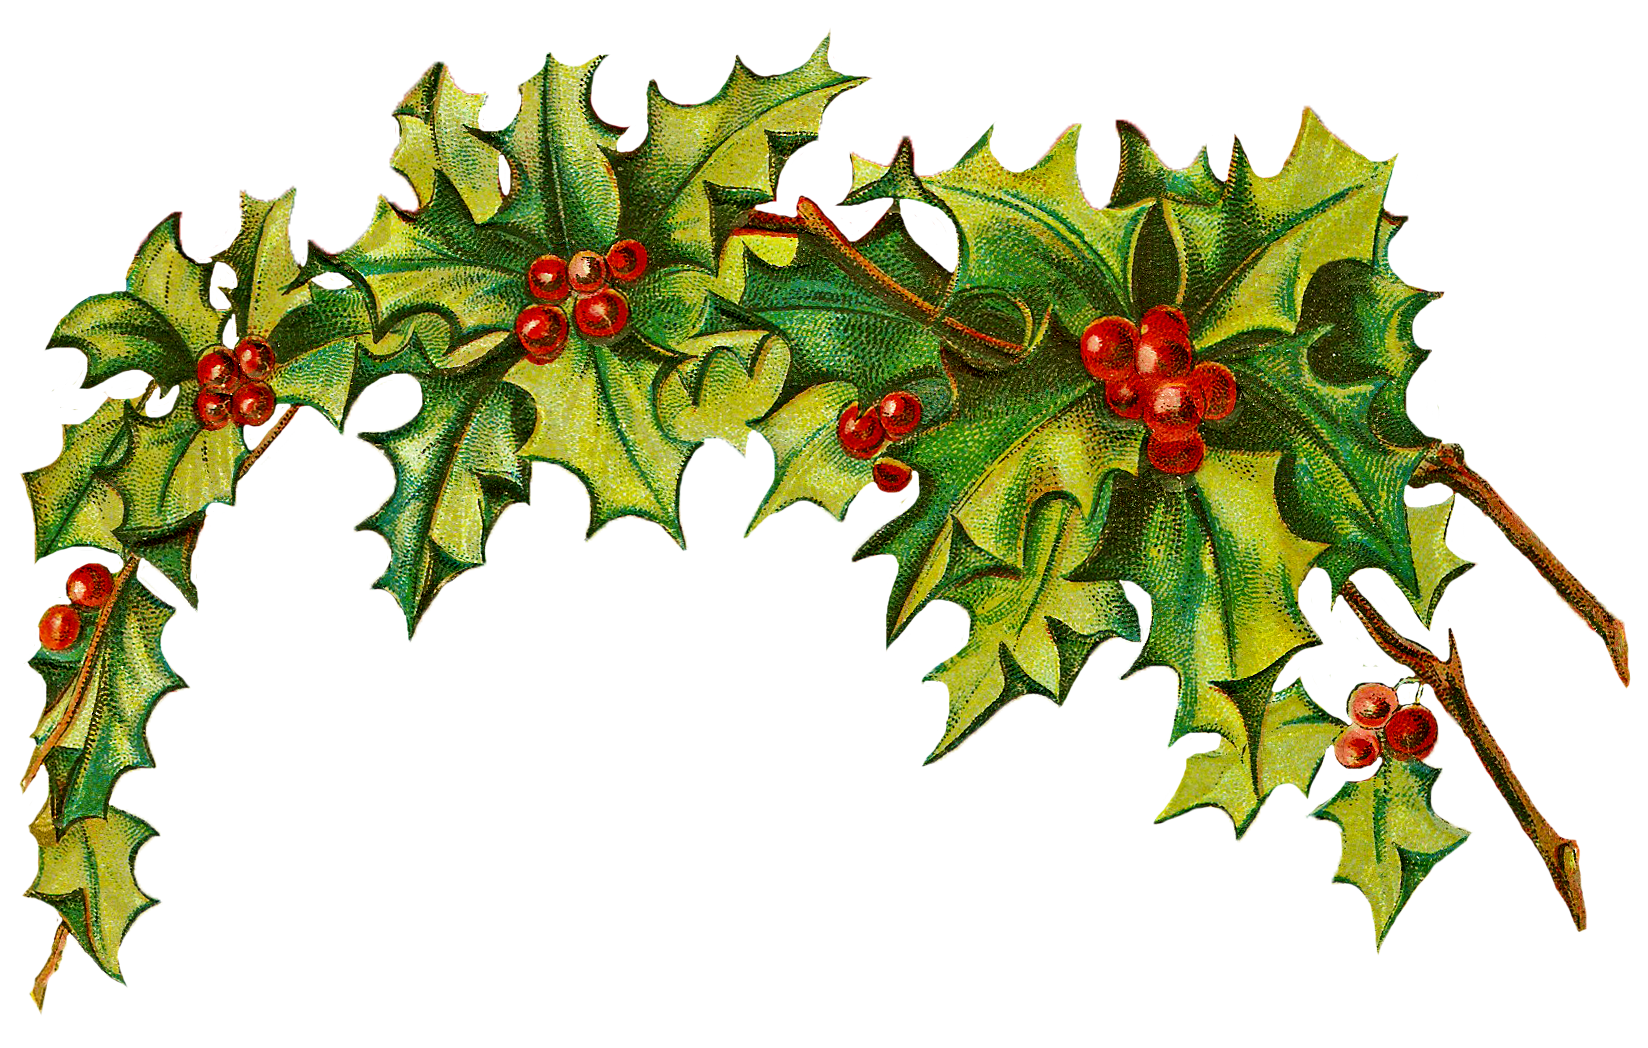 1648x1048 Christmas Remarkable Christmas Holly Photo Ideas. Genus